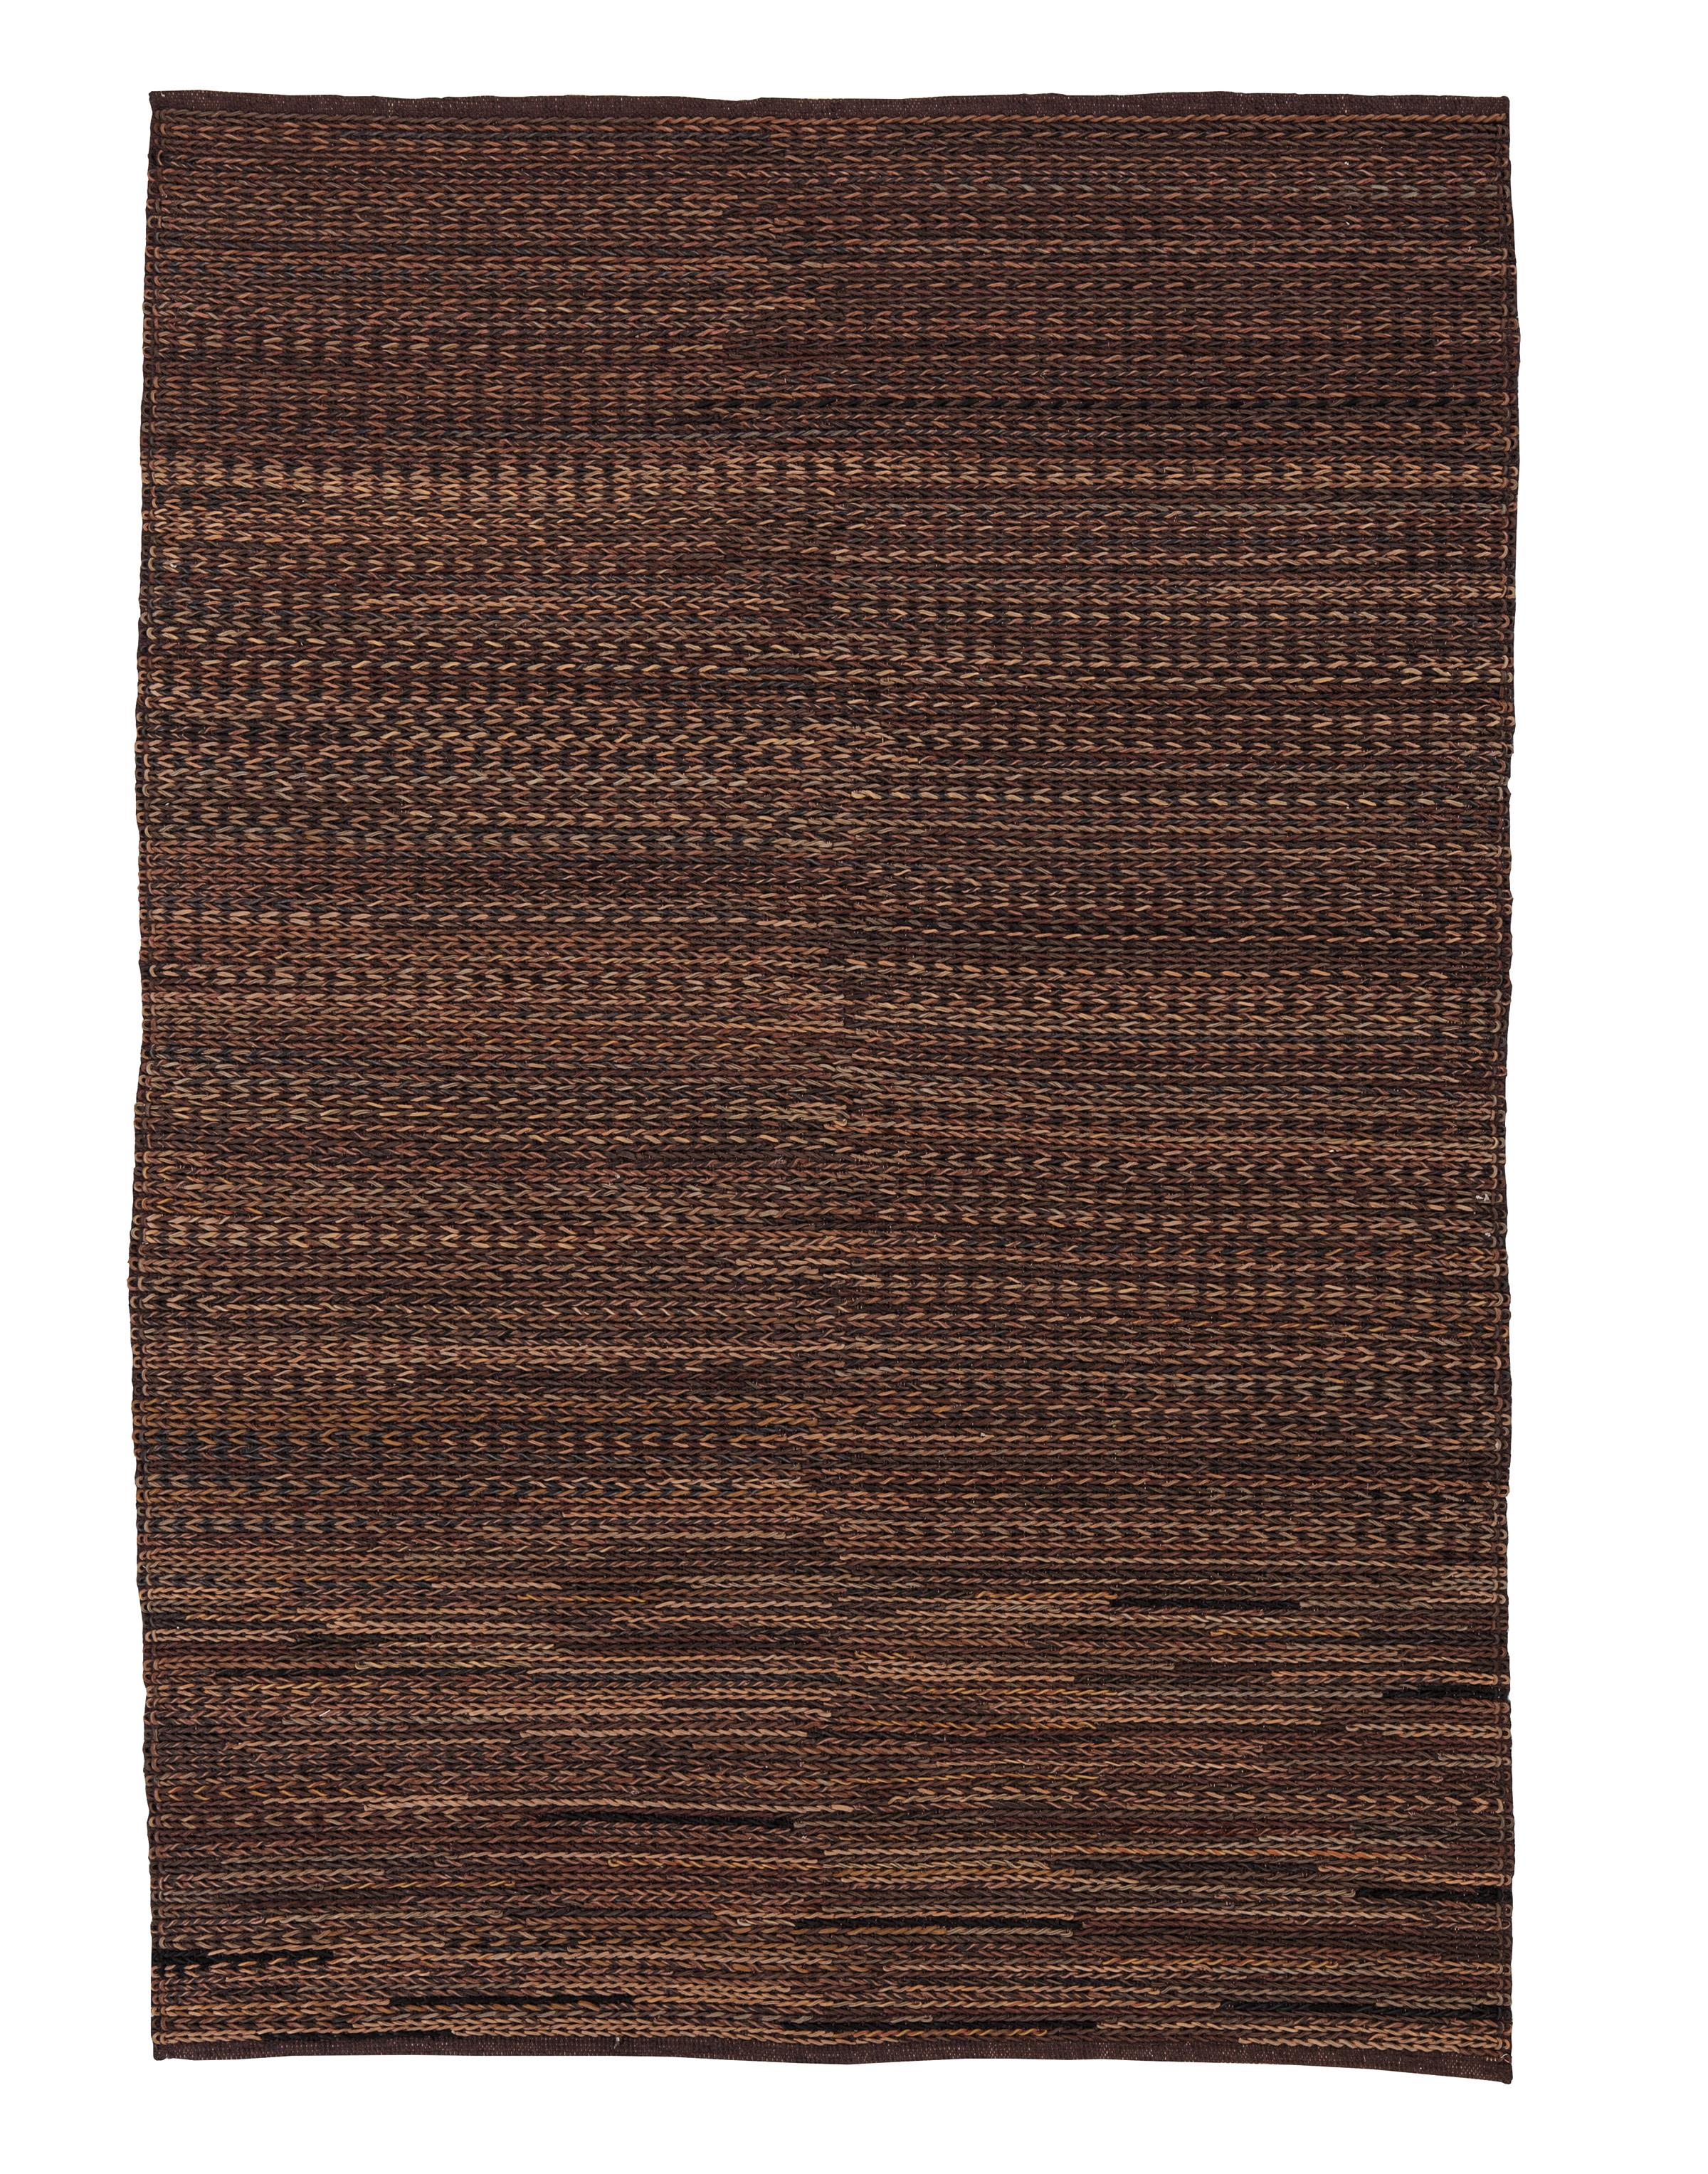 Signature Design by Ashley Contemporary Area Rugs Braided - Brown Large Rug - Item Number: R401001